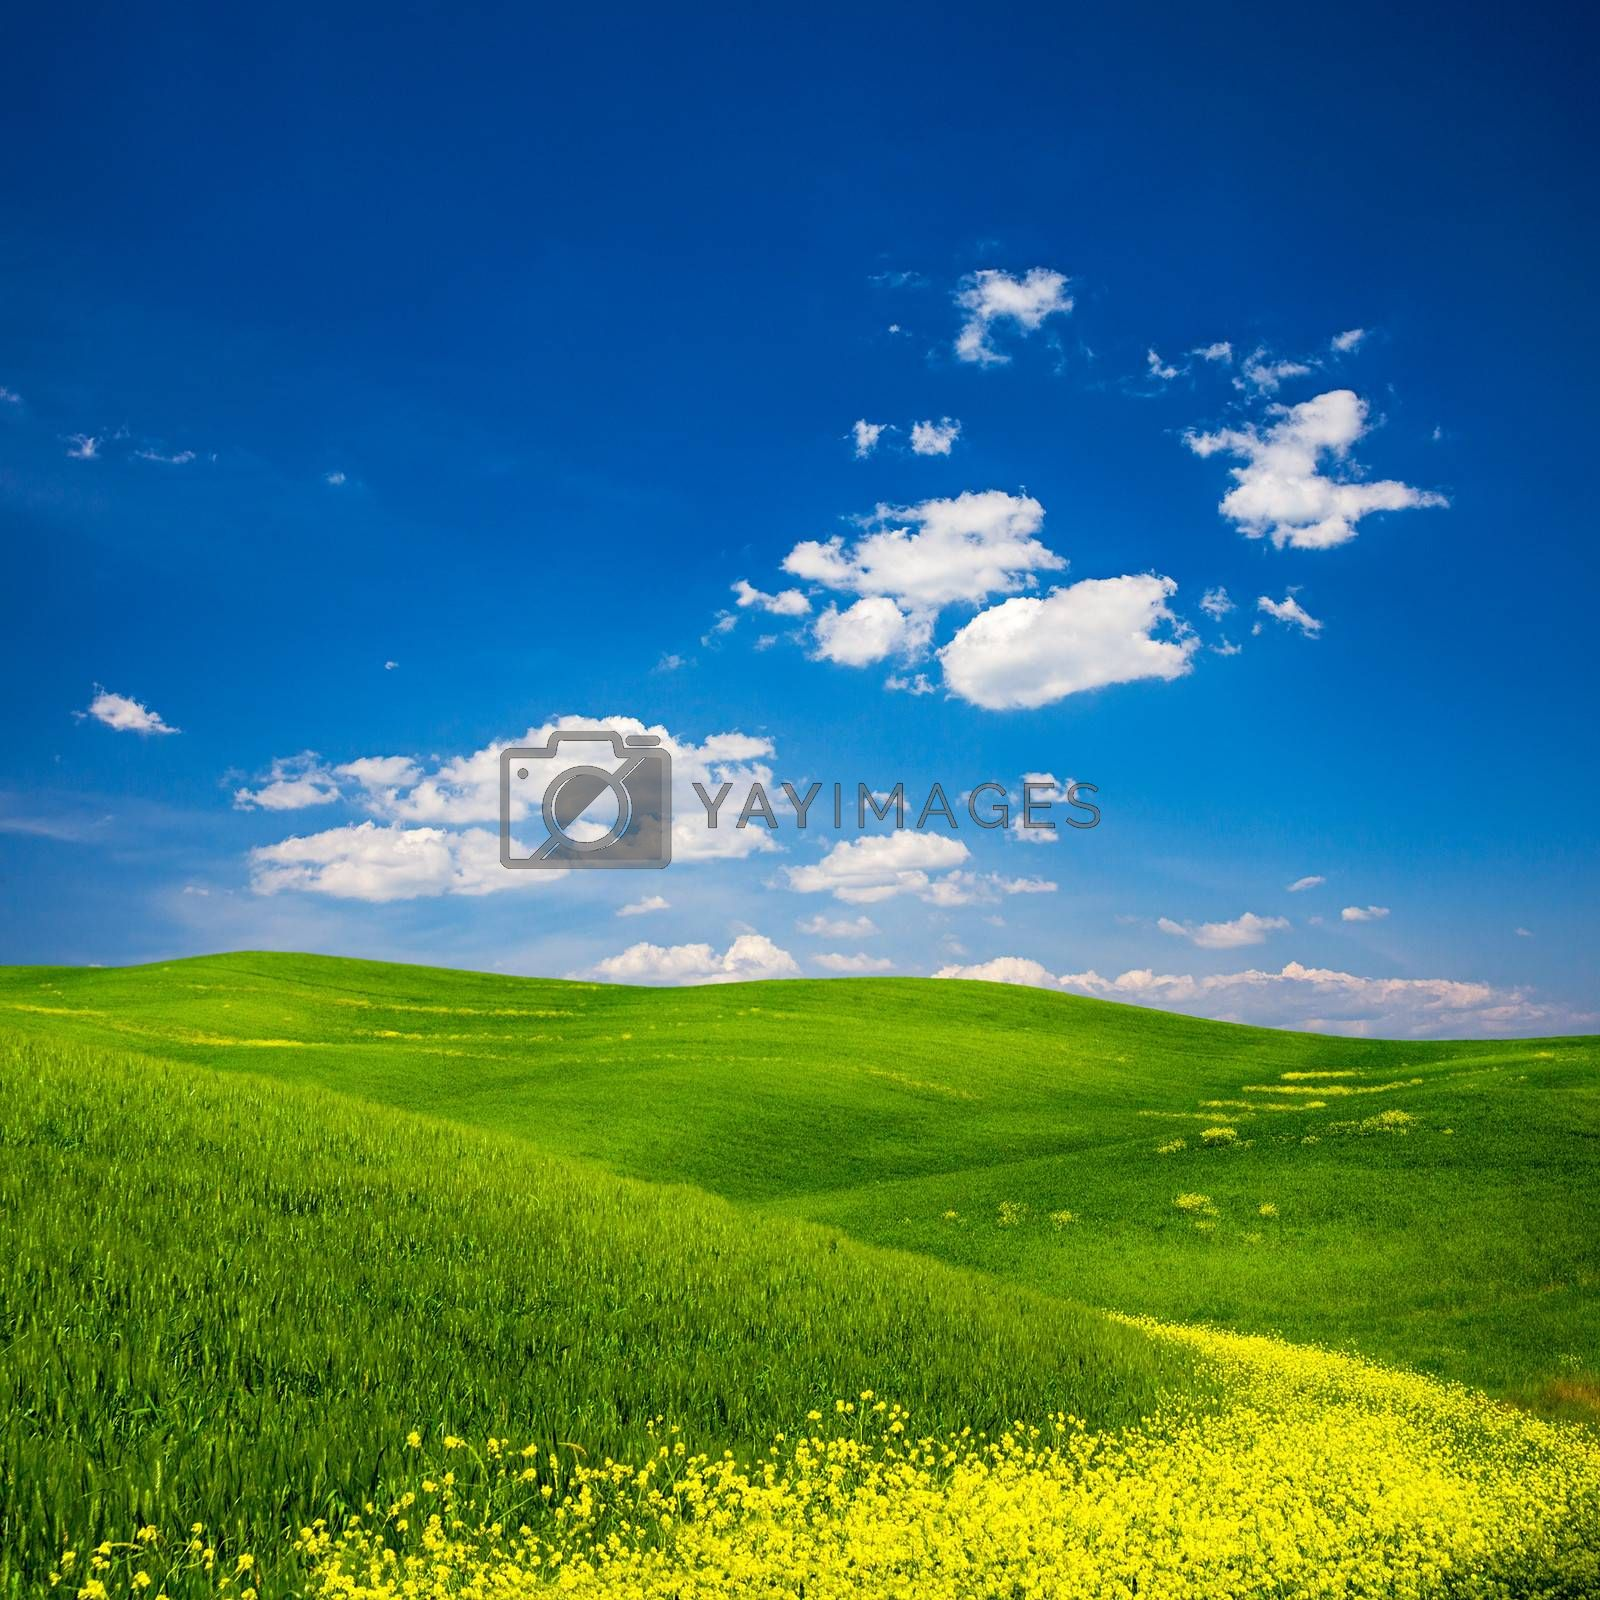 Beautiful view of a green field with yellow flowers in Tuscany, Italy.